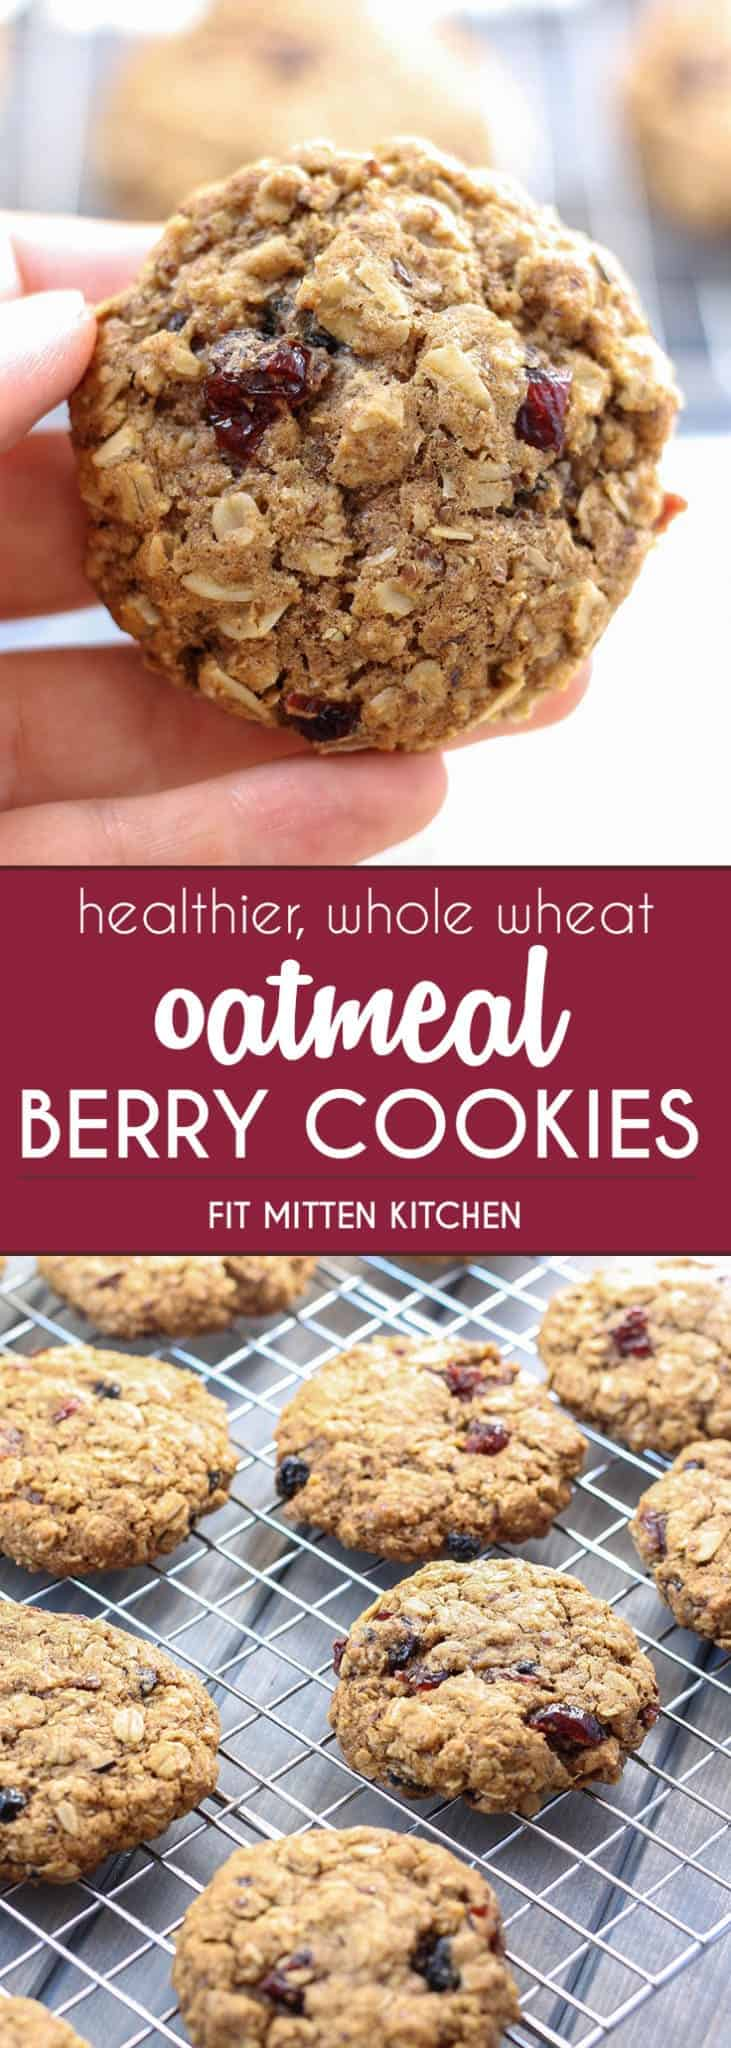 Healthier and whole wheat Oatmeal Berry Cookies!